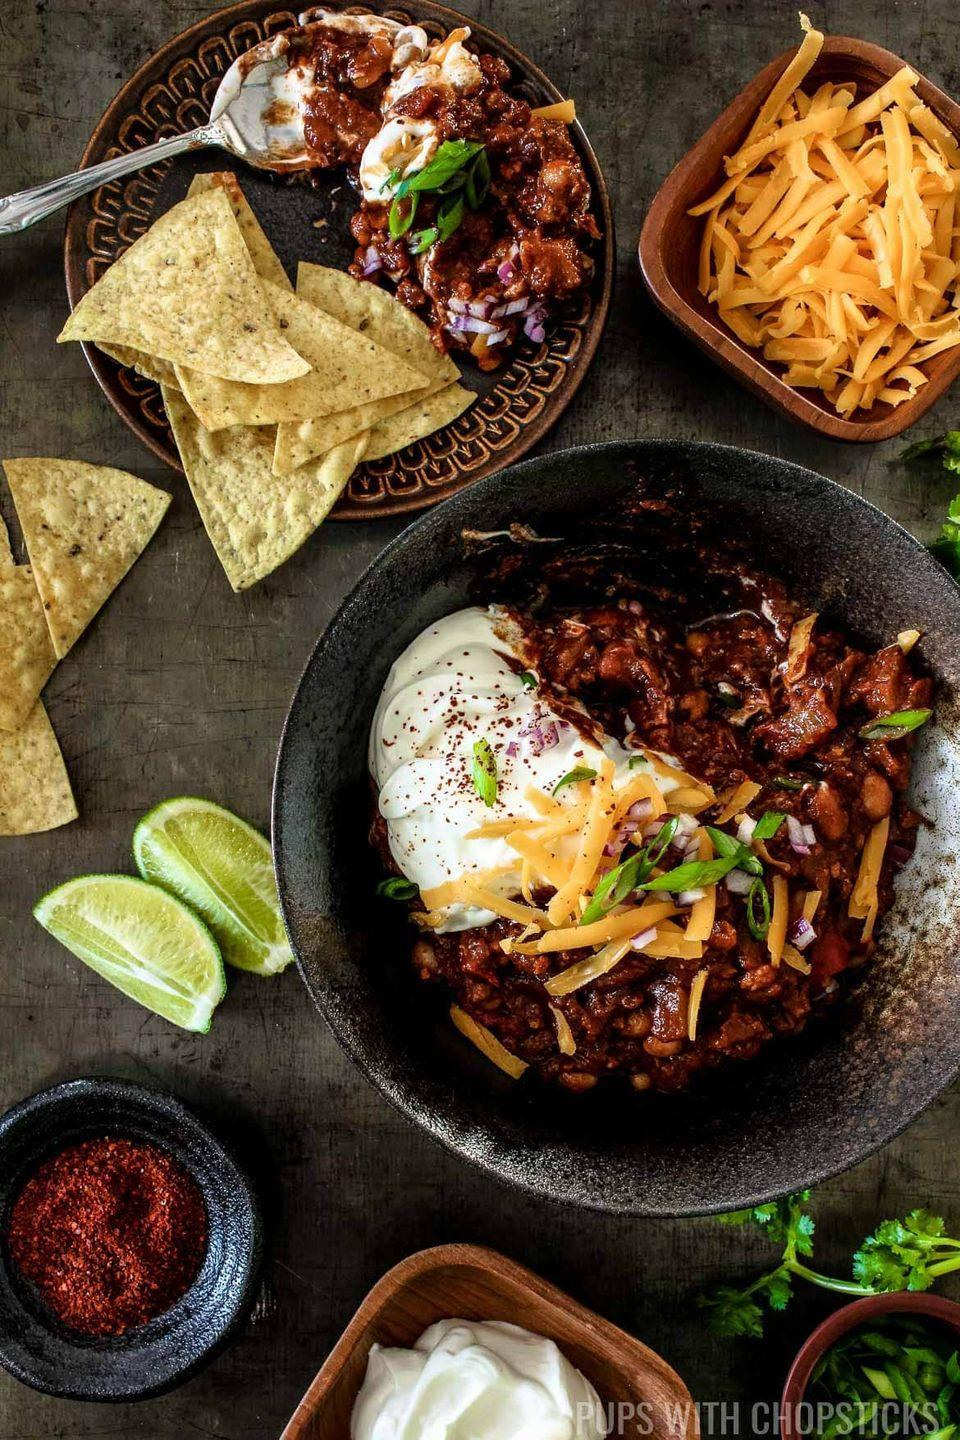 """<p>Along with ground pork, pineapple, and chipotles, this hearty chili gets its deep flavor from a secret ingredient: cocoa powder.</p><p><strong>Get the recipe at <a href=""""https://pupswithchopsticks.com/sweet-smoky-pineapple-chipotle-chili/#recipe"""" rel=""""nofollow noopener"""" target=""""_blank"""" data-ylk=""""slk:Pups with Chopsticks"""" class=""""link rapid-noclick-resp"""">Pups with Chopsticks</a>.</strong></p>"""